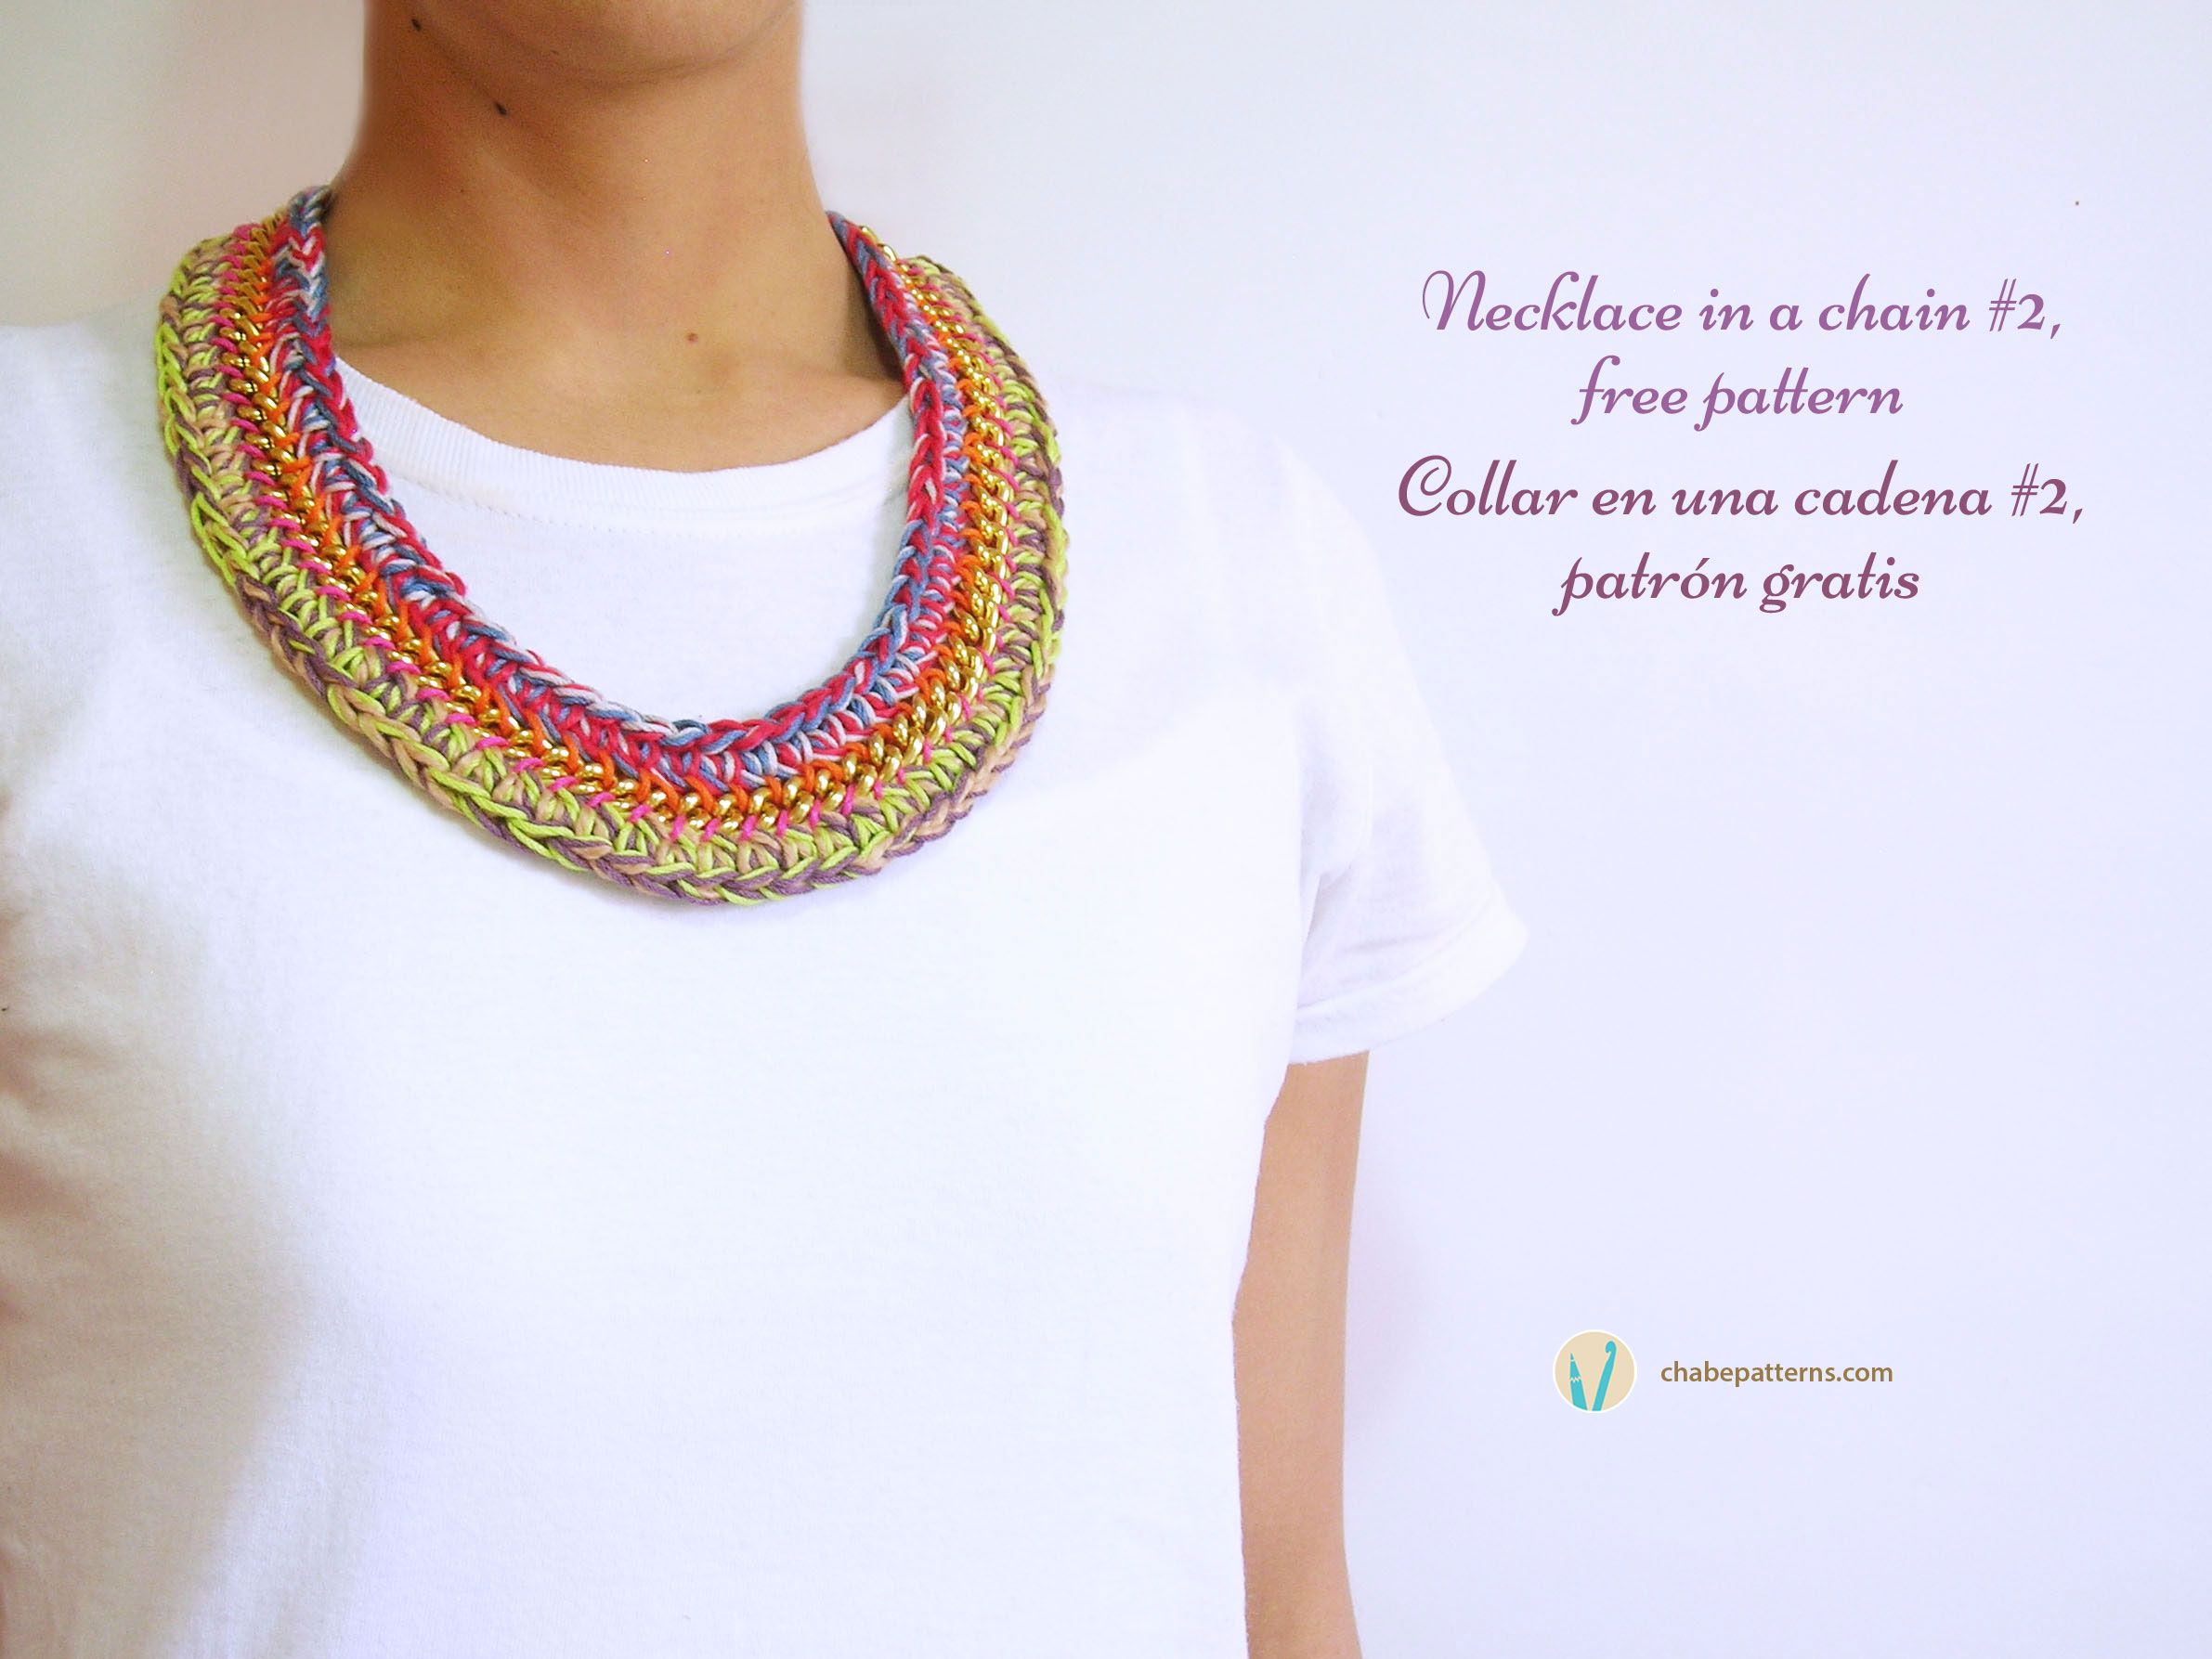 Crochet in a chain #2/ Crochet en una cadena #2 | Chabepatterns ...